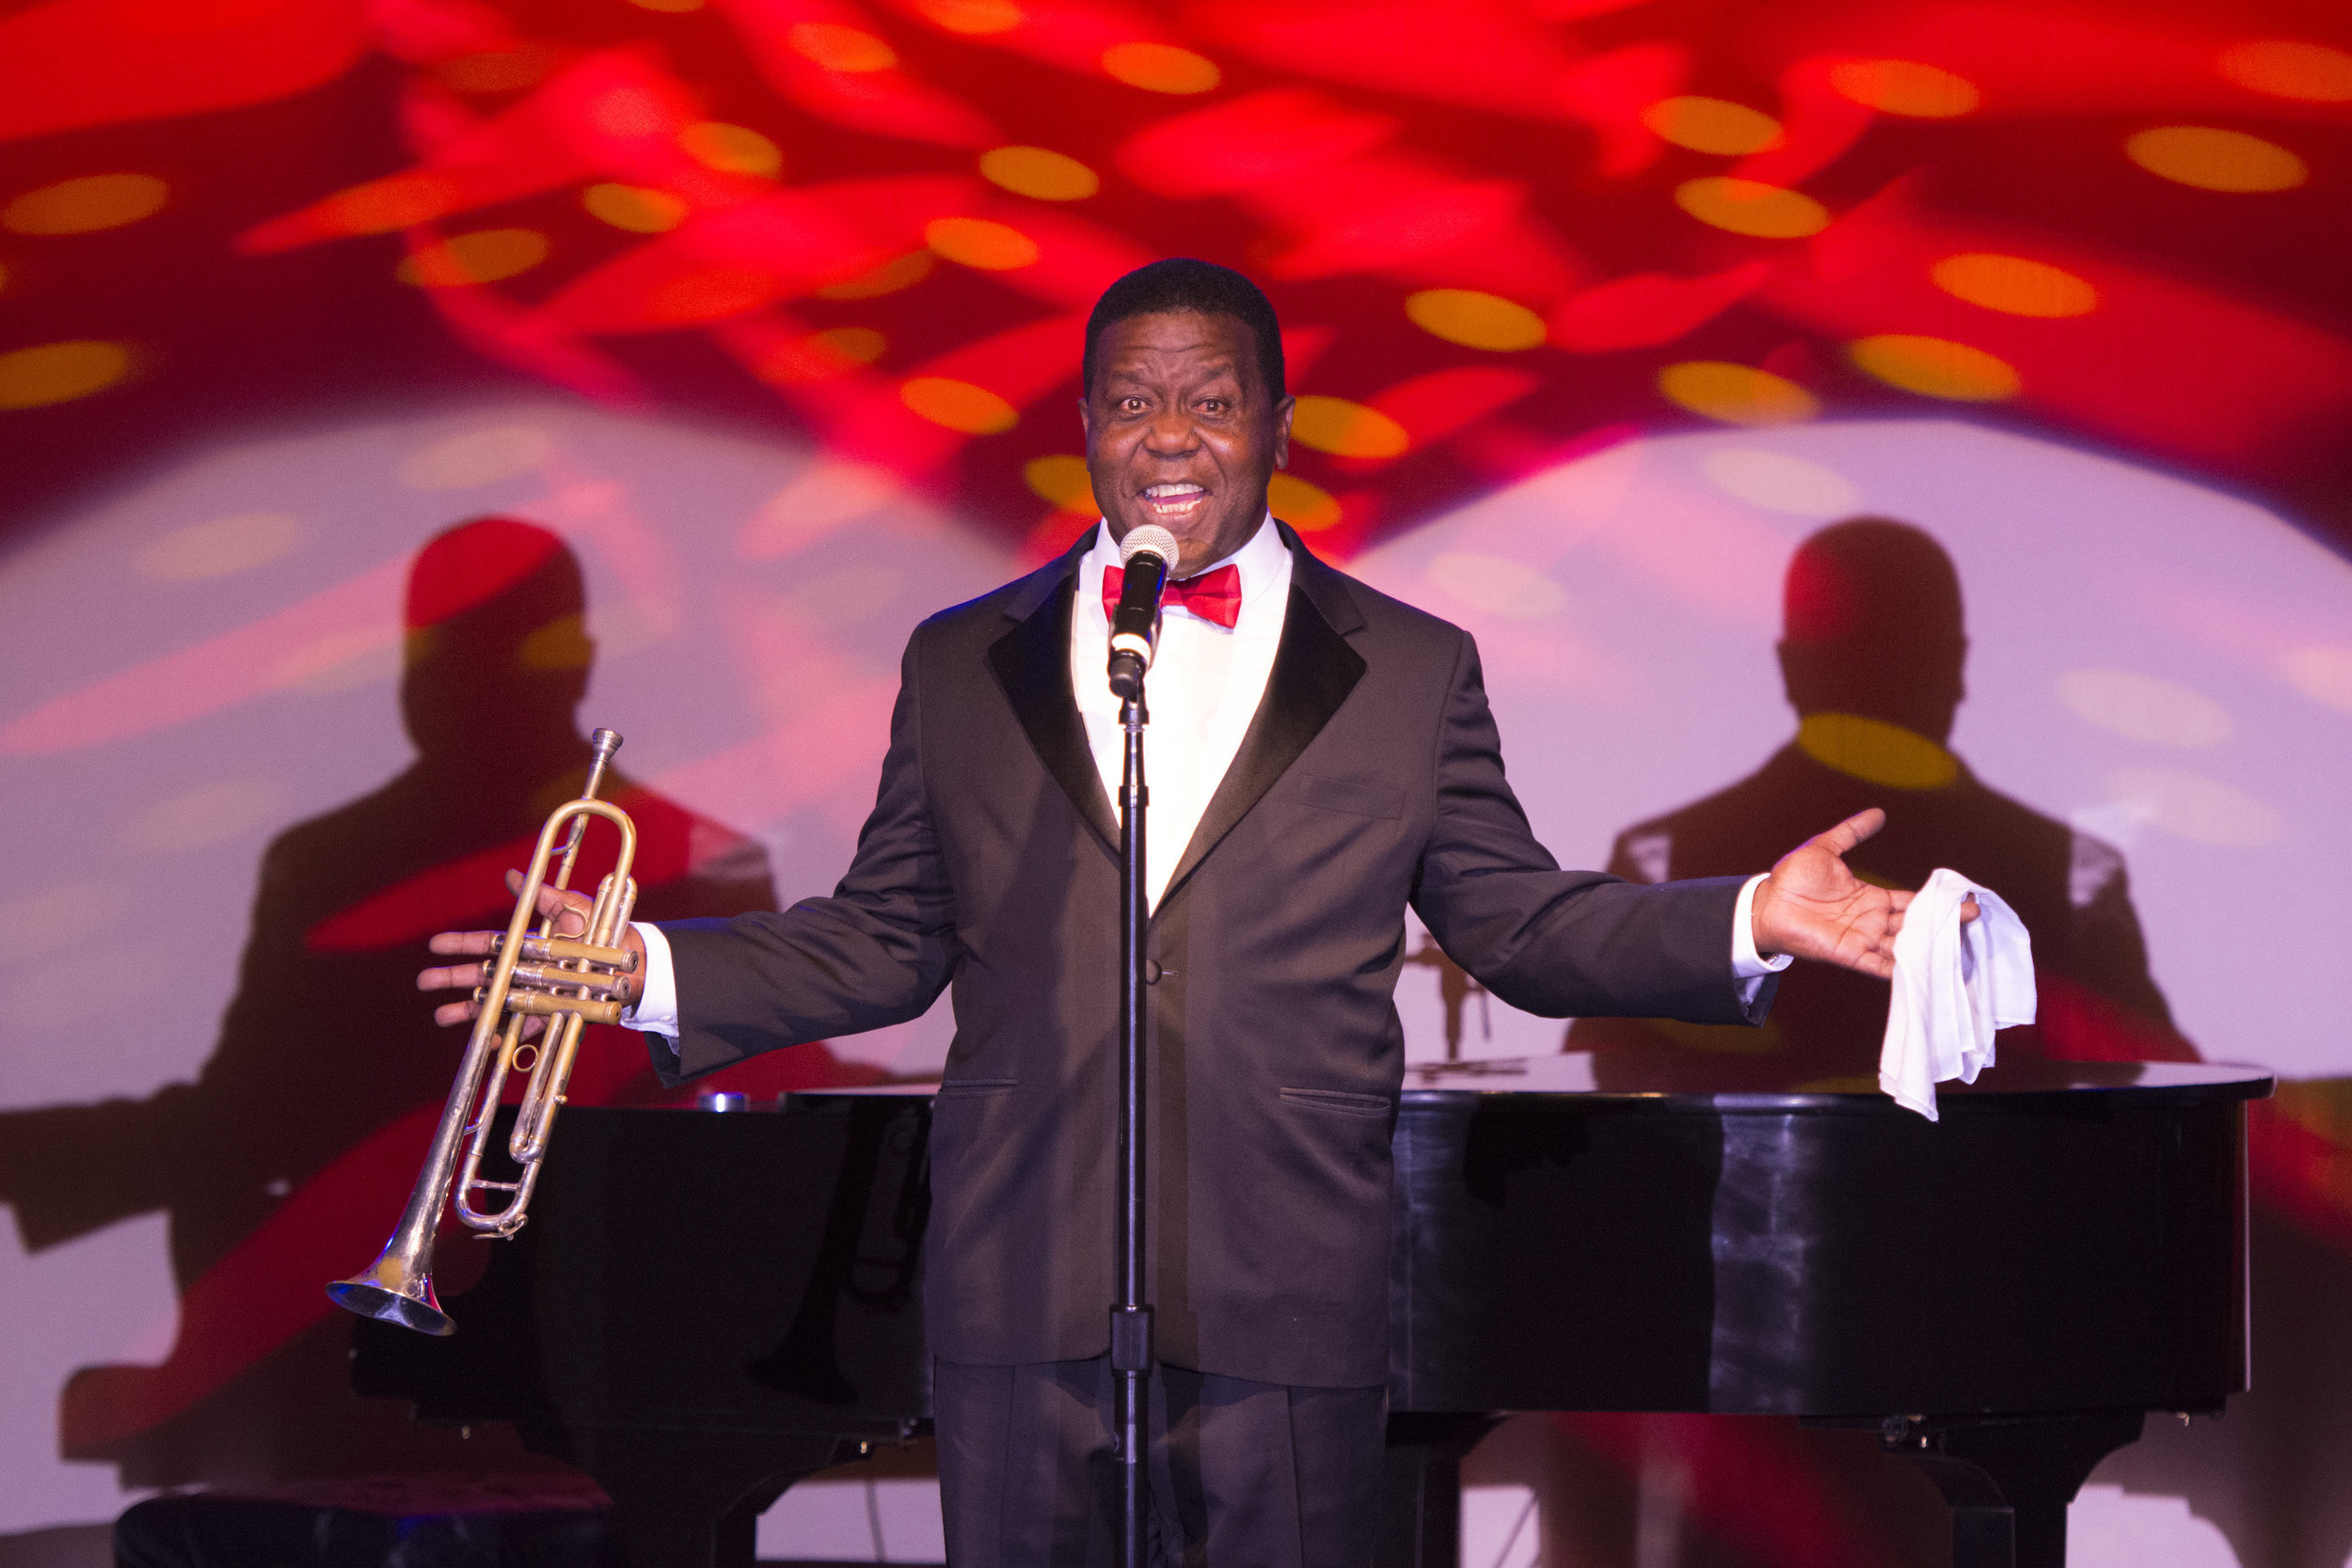 Louis Armstrong impersonator Troy Anderson performs during The Reel Awards at the Golden Nugget Hotel & Casino in Las Vegas, Nev., on February 20, 2017. The awards show is meant to be a humorous tribute to the Academy Awards. (Jason Ogulnik/Sipa USA)